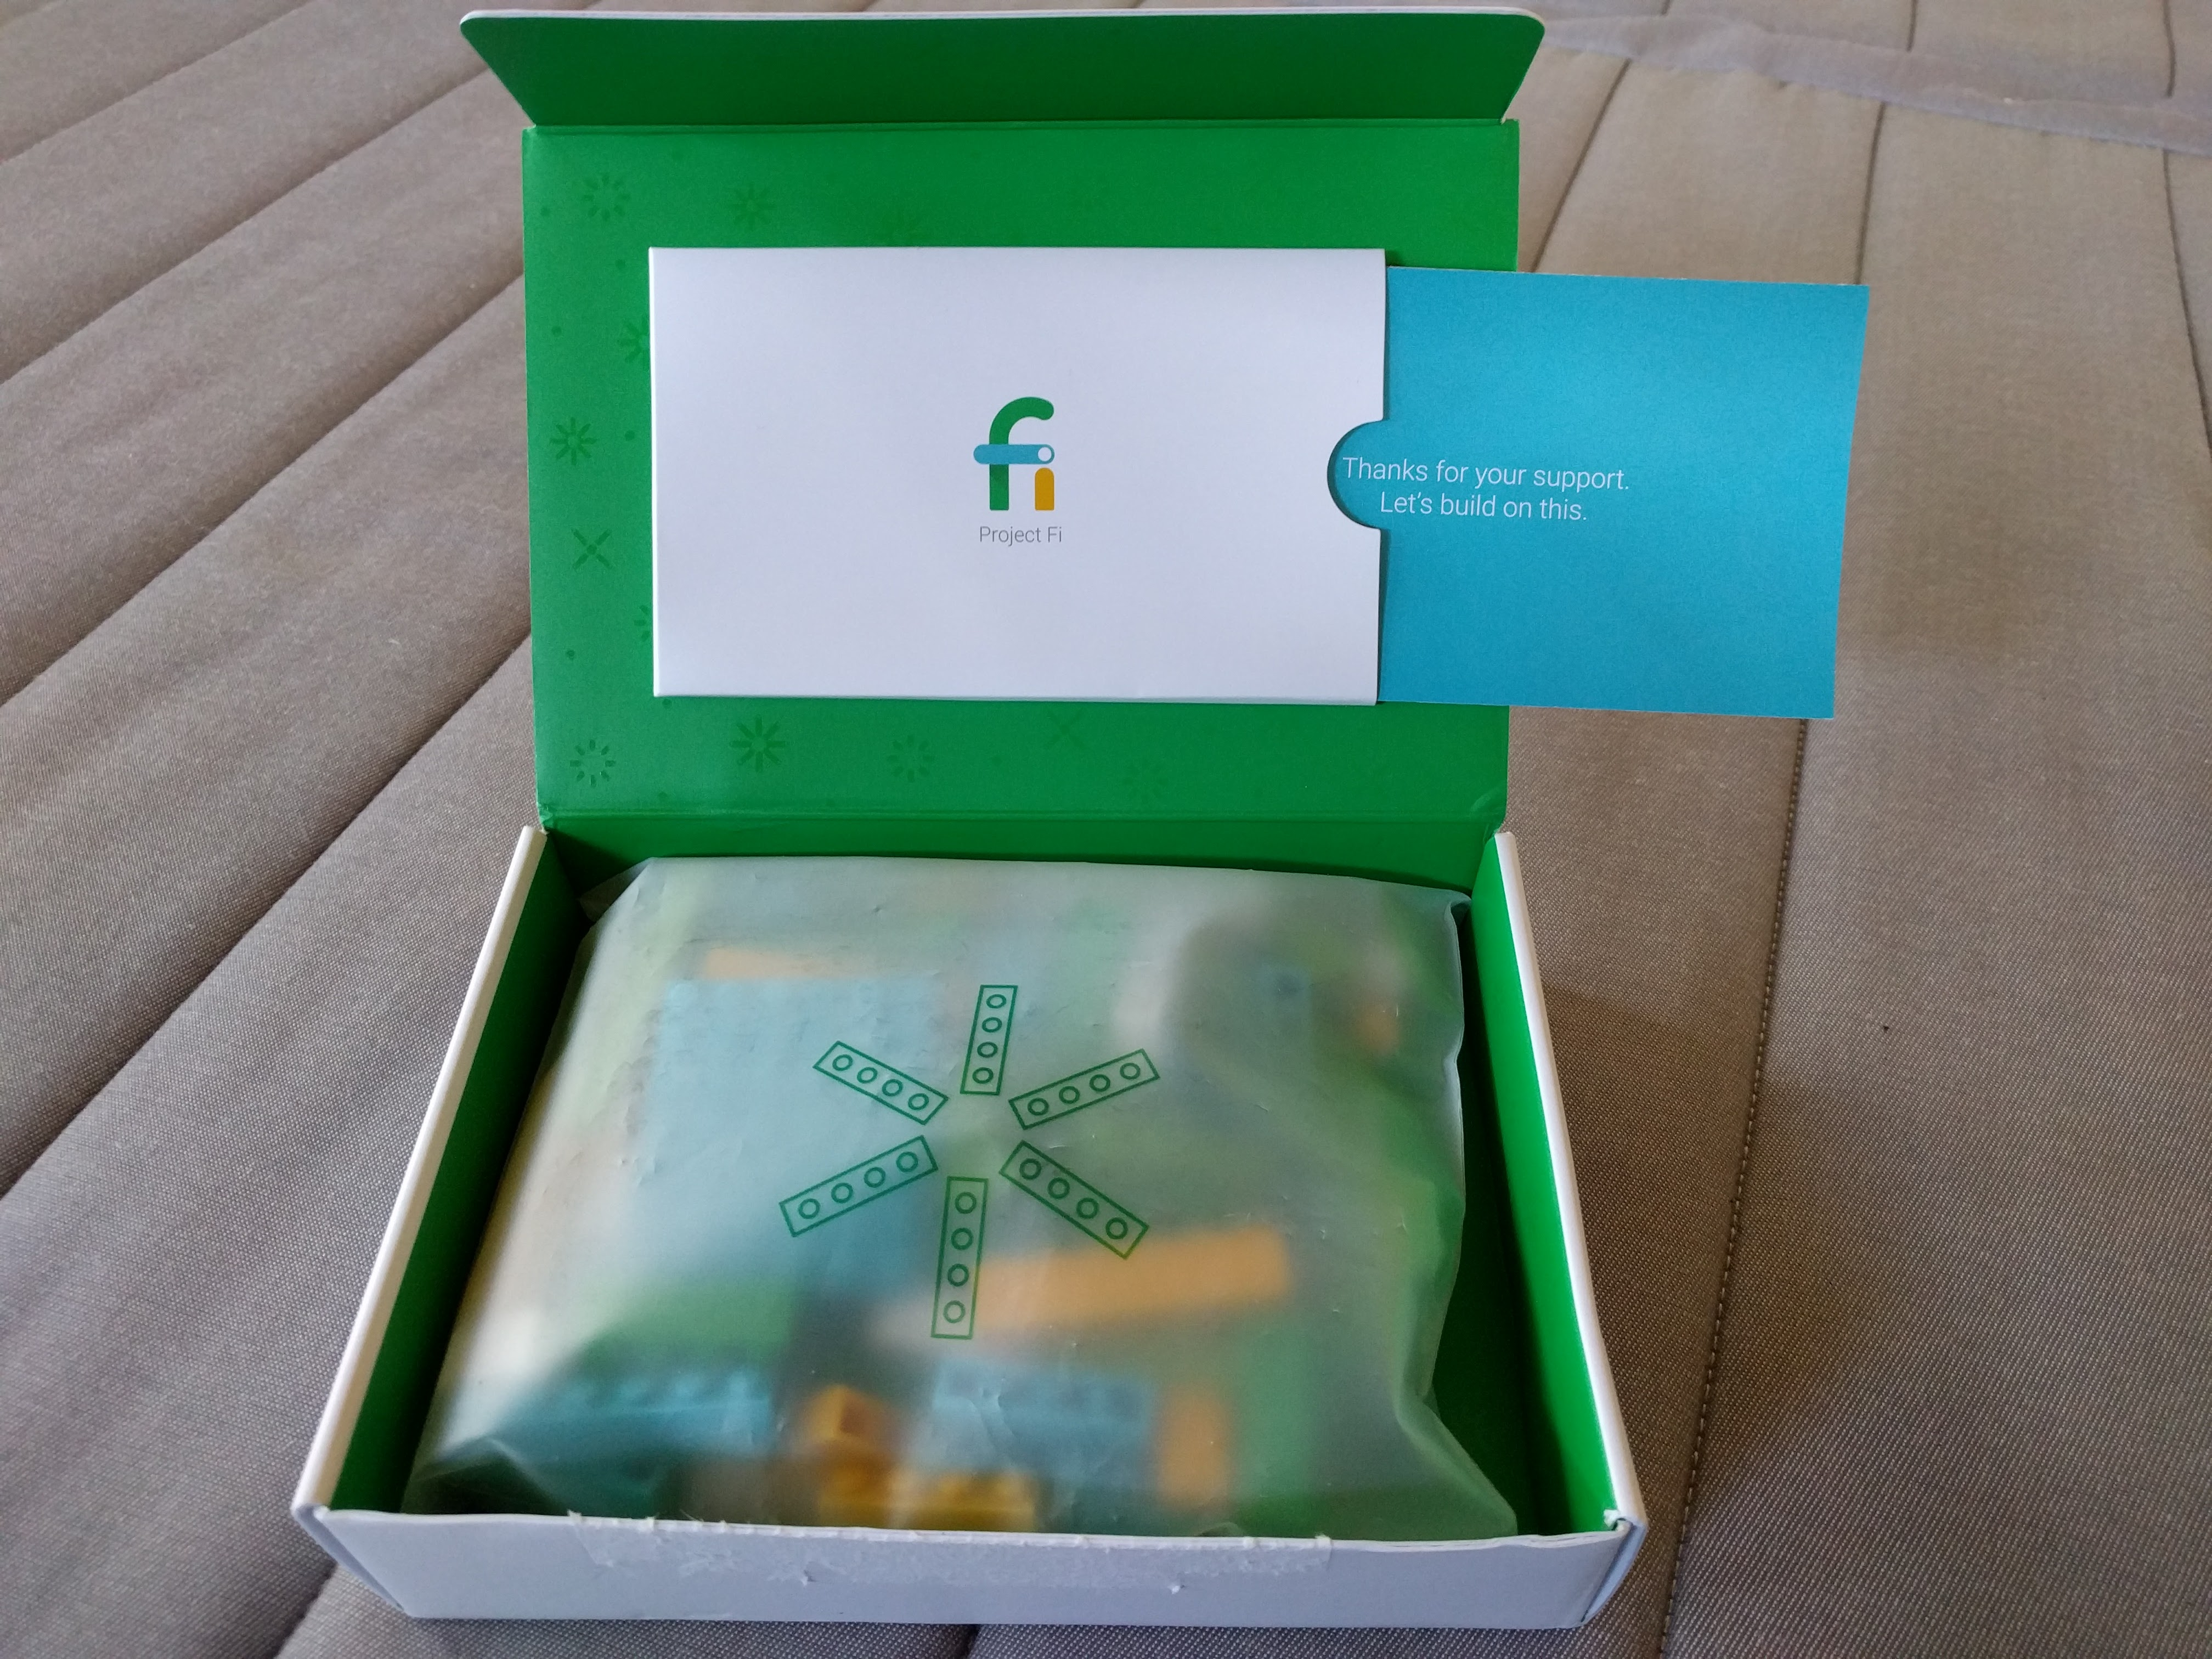 Aww, thanks for the Project Fi Lego set, Google.